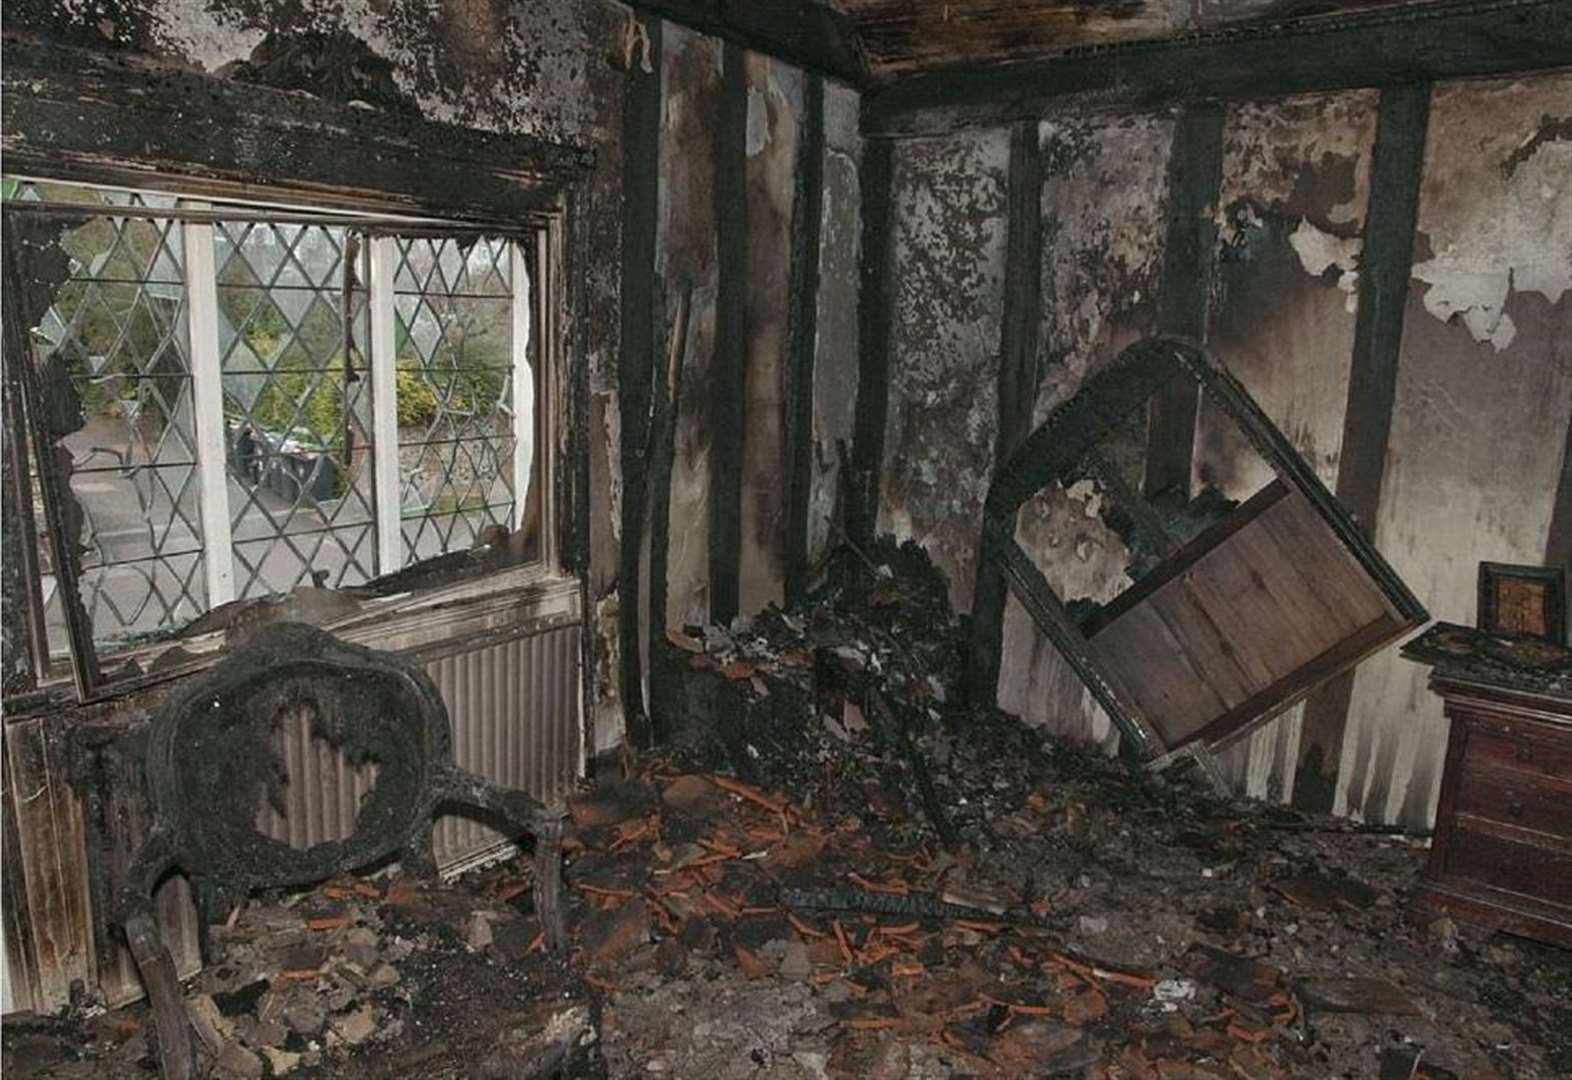 Arsonist's 'act of vengeance' caused £1.7m damage to 700-year-old house